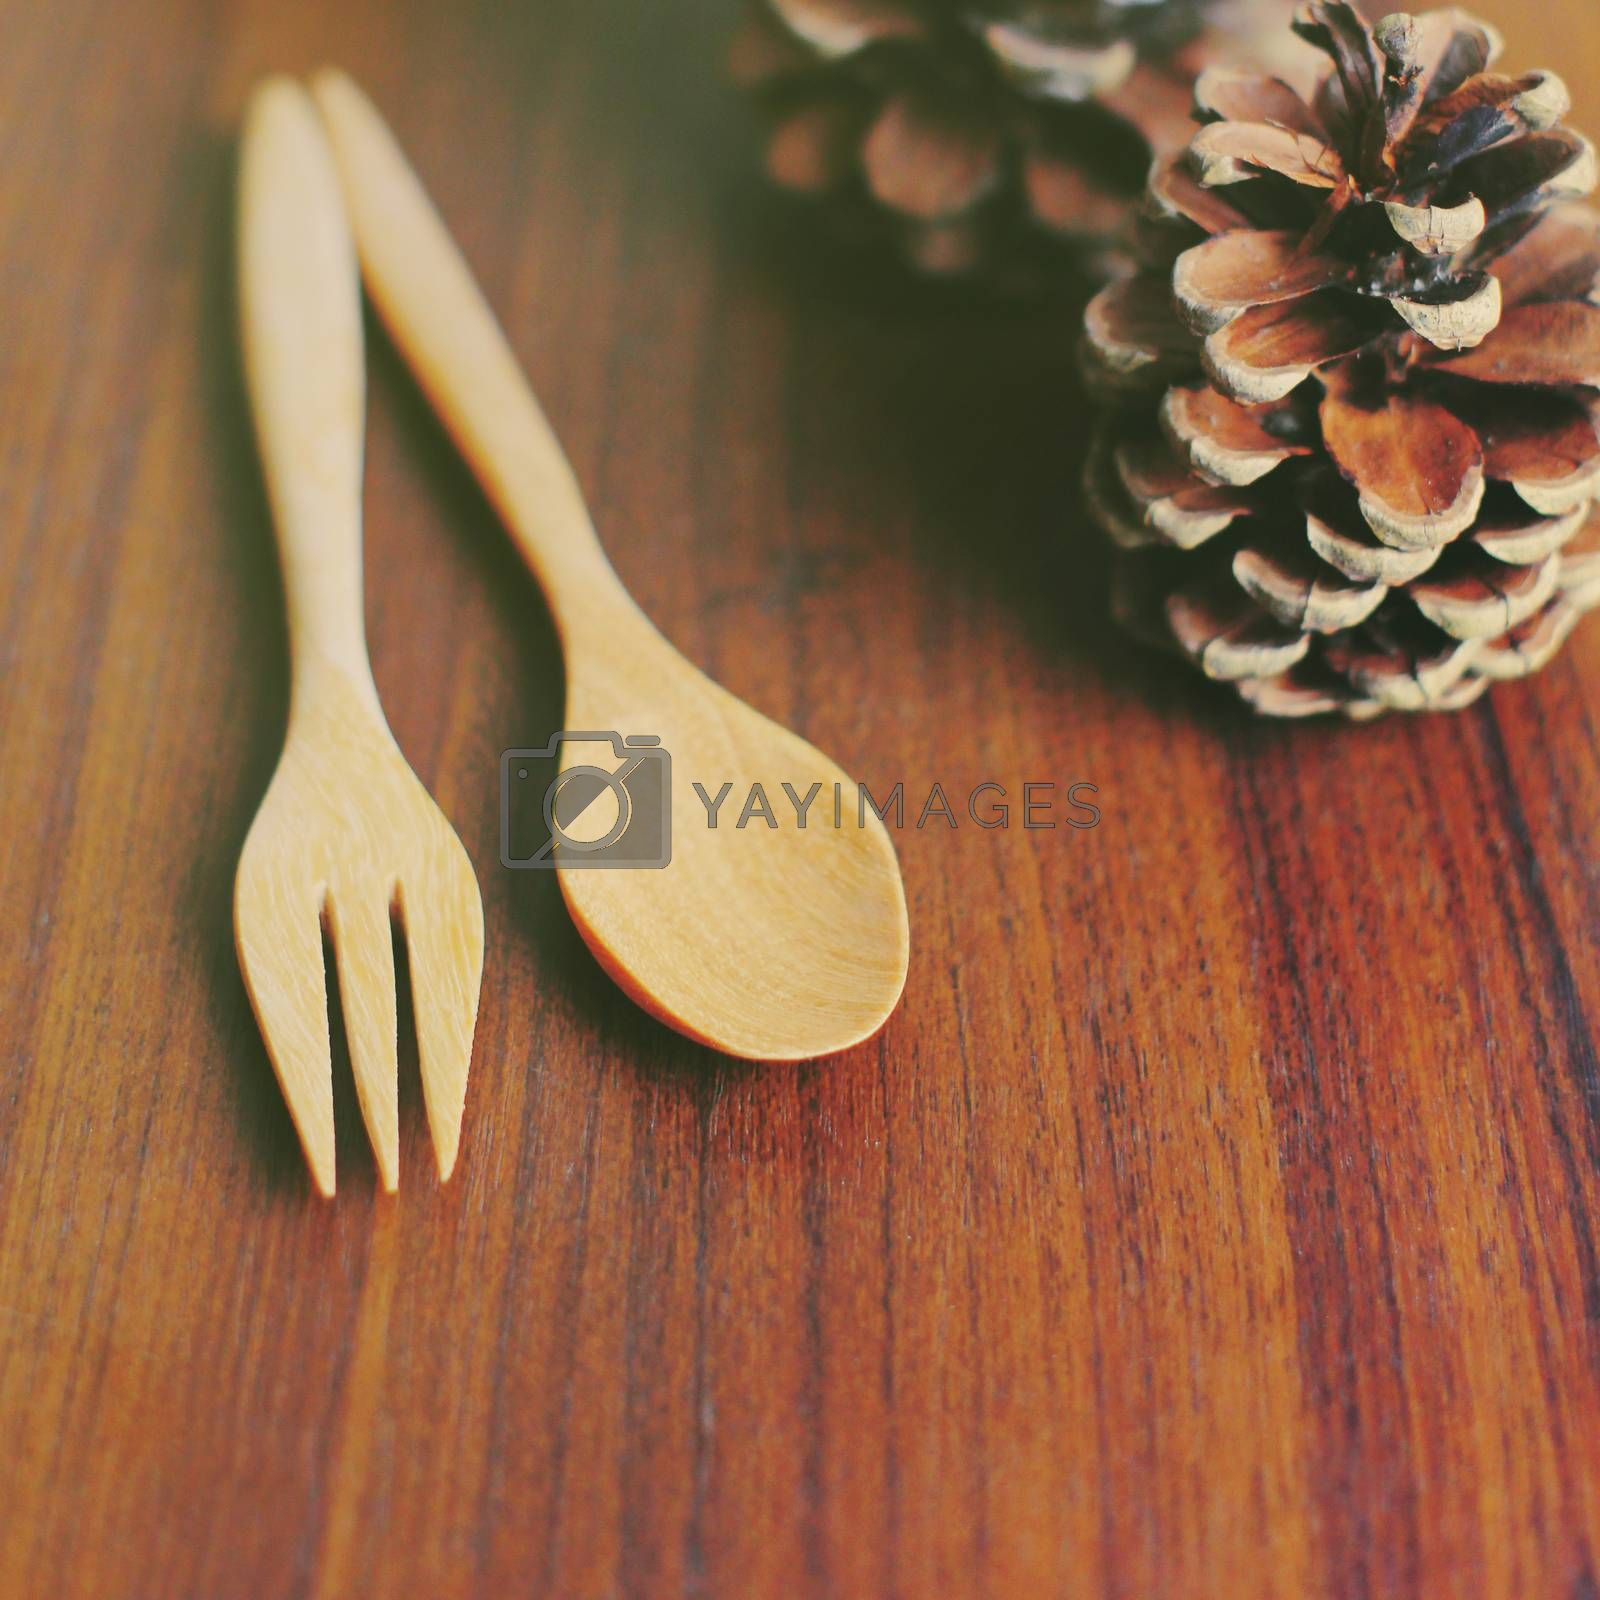 Wooden spoon and fork with pine cone, retro filter effect